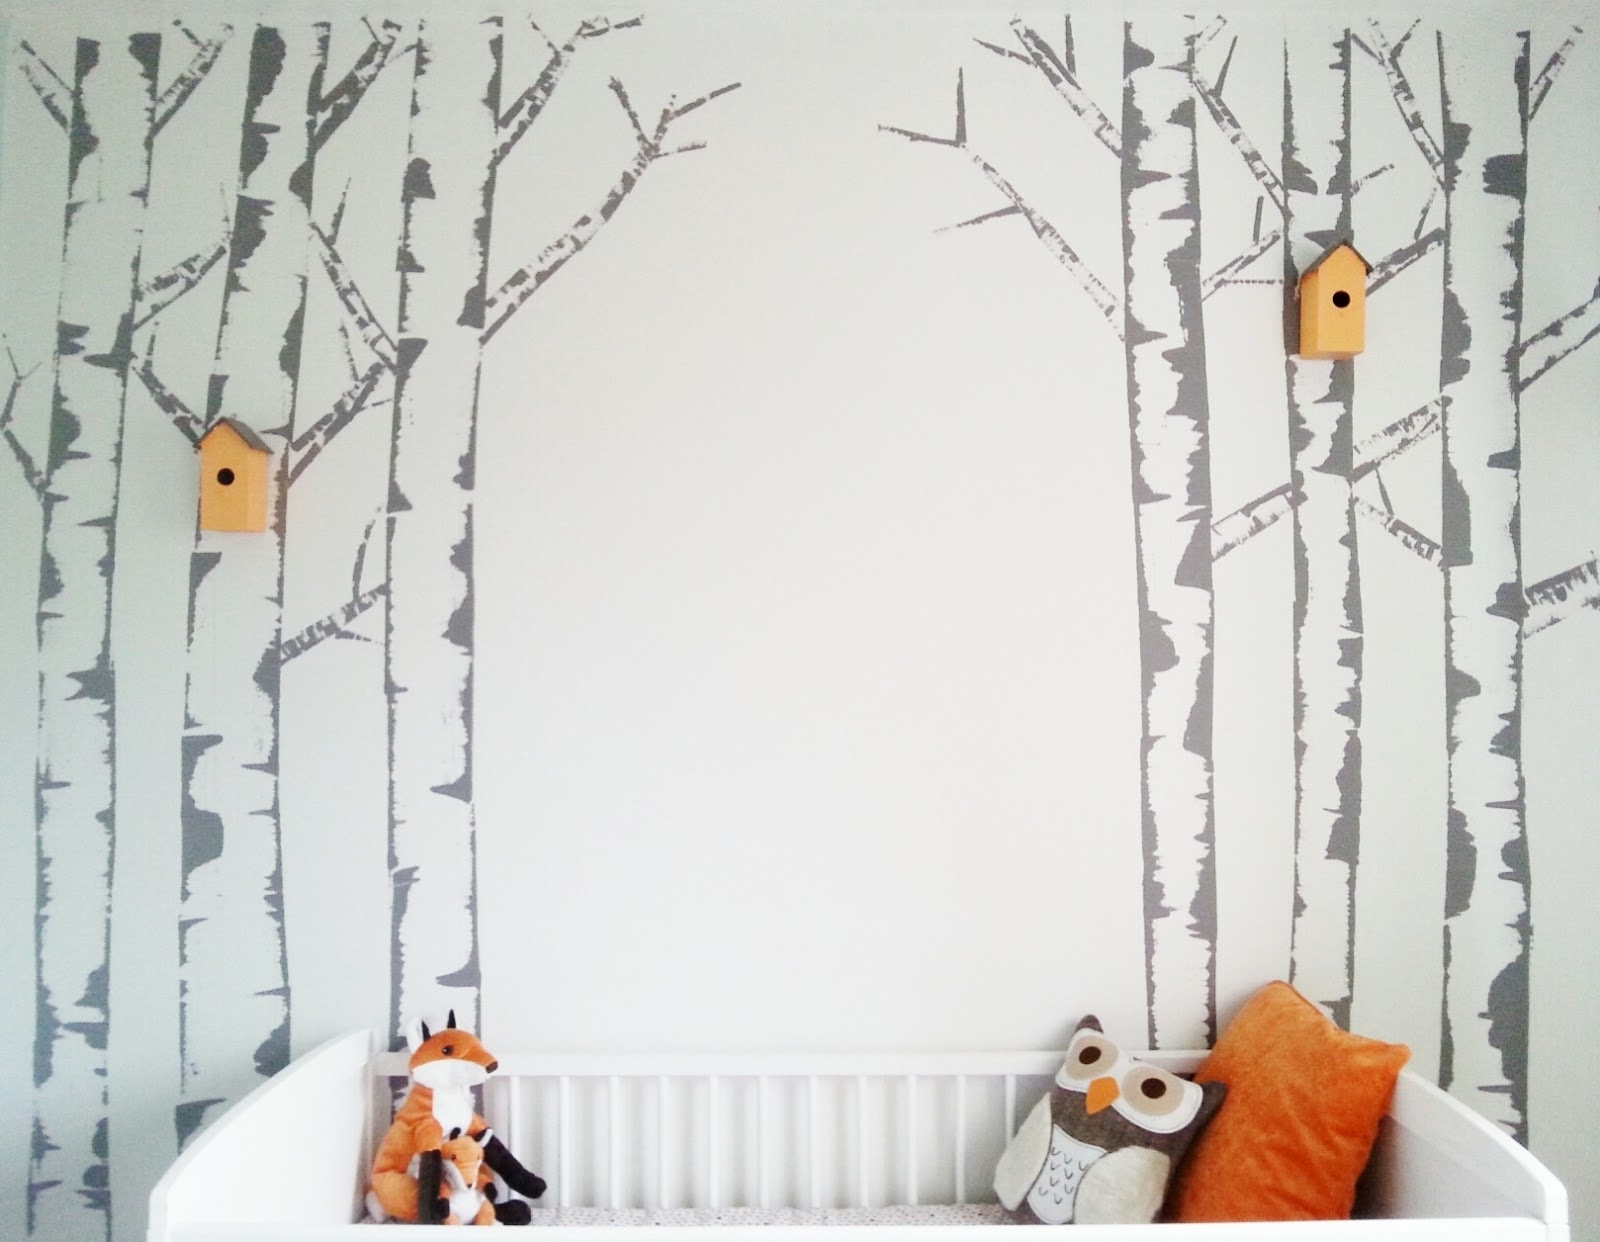 Well Known If You Go Down To The Wood's Today ~ Make Do And Diy With Painted Trees Wall Art (View 13 of 15)